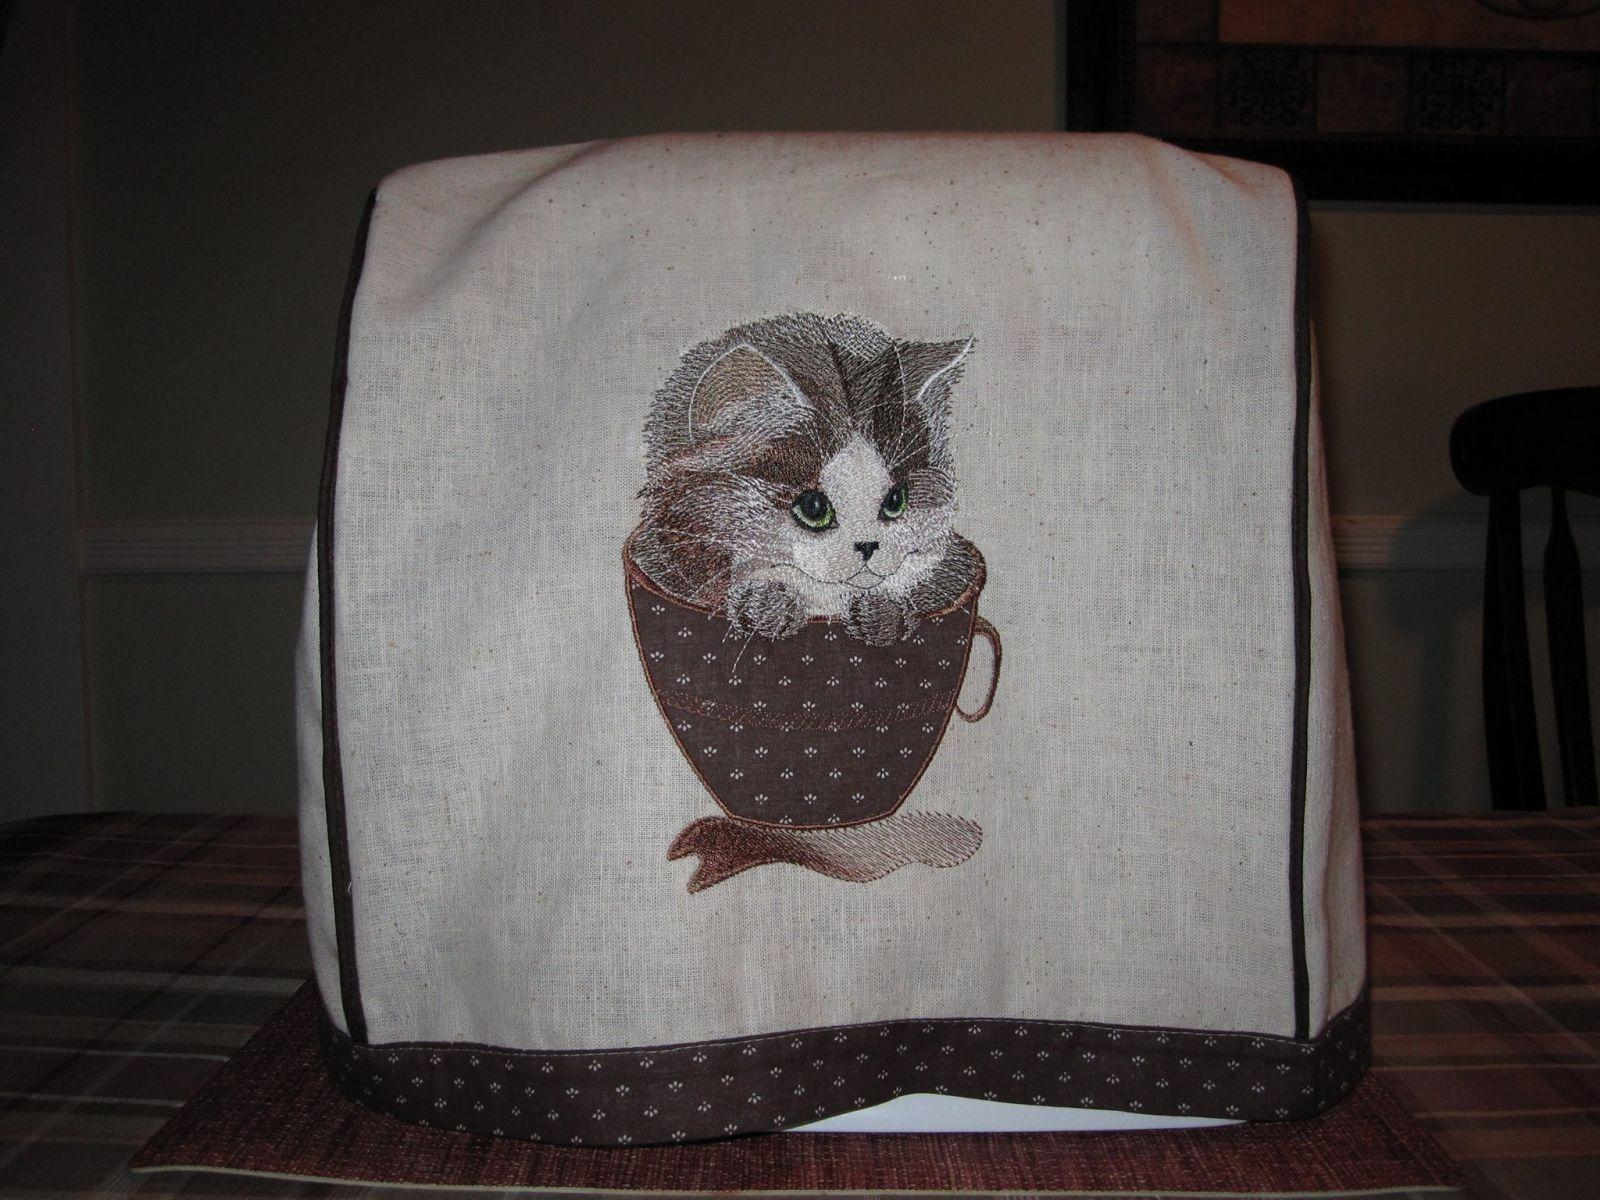 Embroidered Kitchen Cover With Cat Applique Embroidery Design